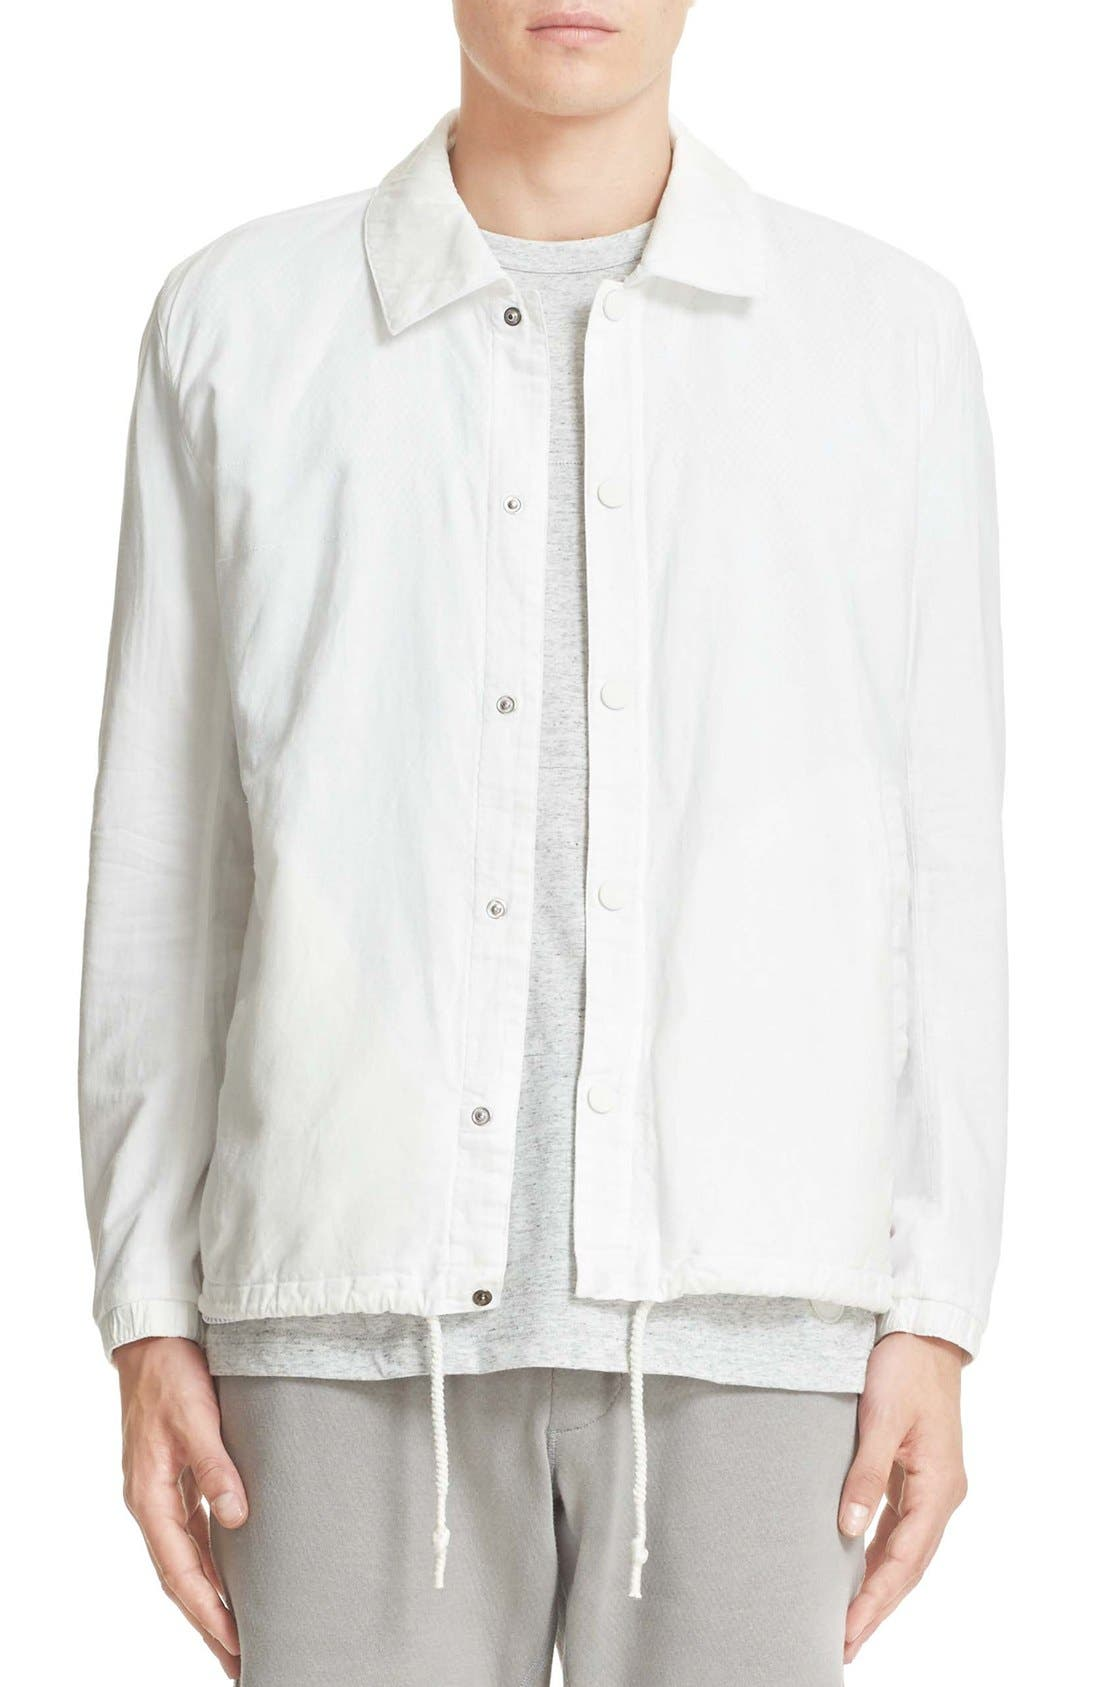 Cotton & Linen Coach Jacket,                             Main thumbnail 1, color,                             Off White